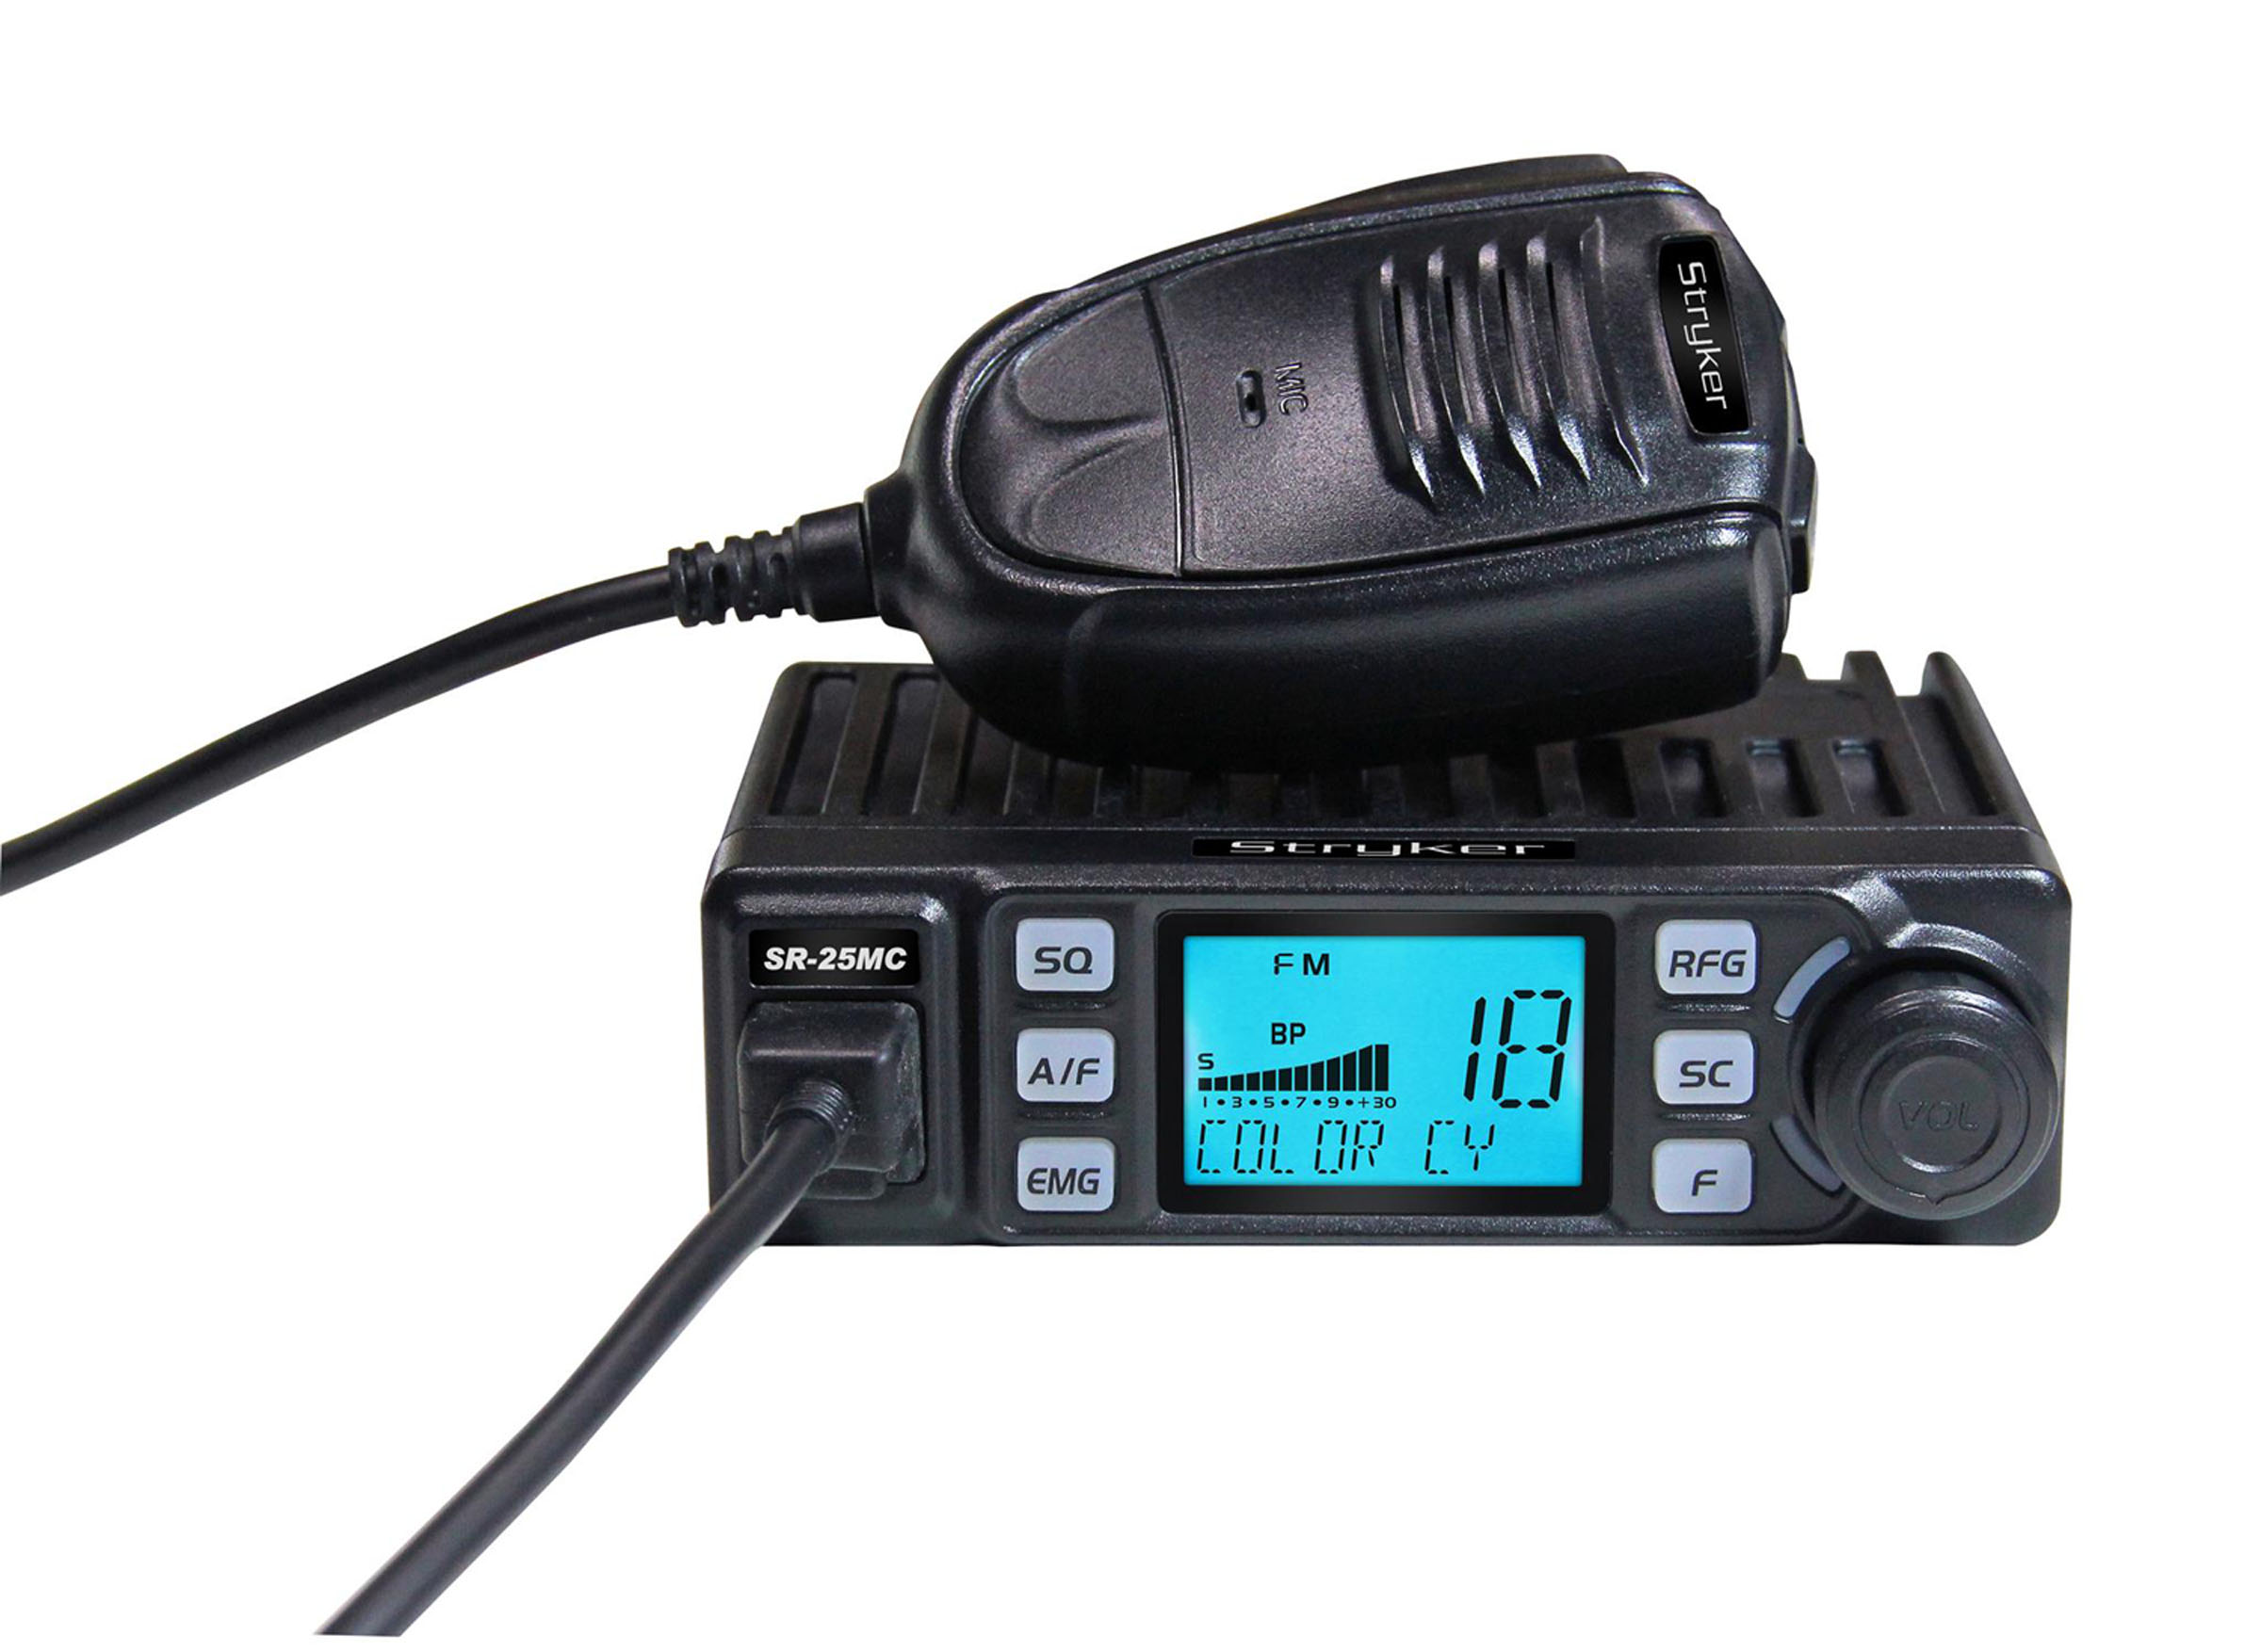 STRYKER - SR25MC COMPACT 20 WATT PEP AM/FM 10 METER AMATEUR RADIO WITH SELECTABLE 7 COLOR LCD DISPLAY & 6 LEVEL DIMMER